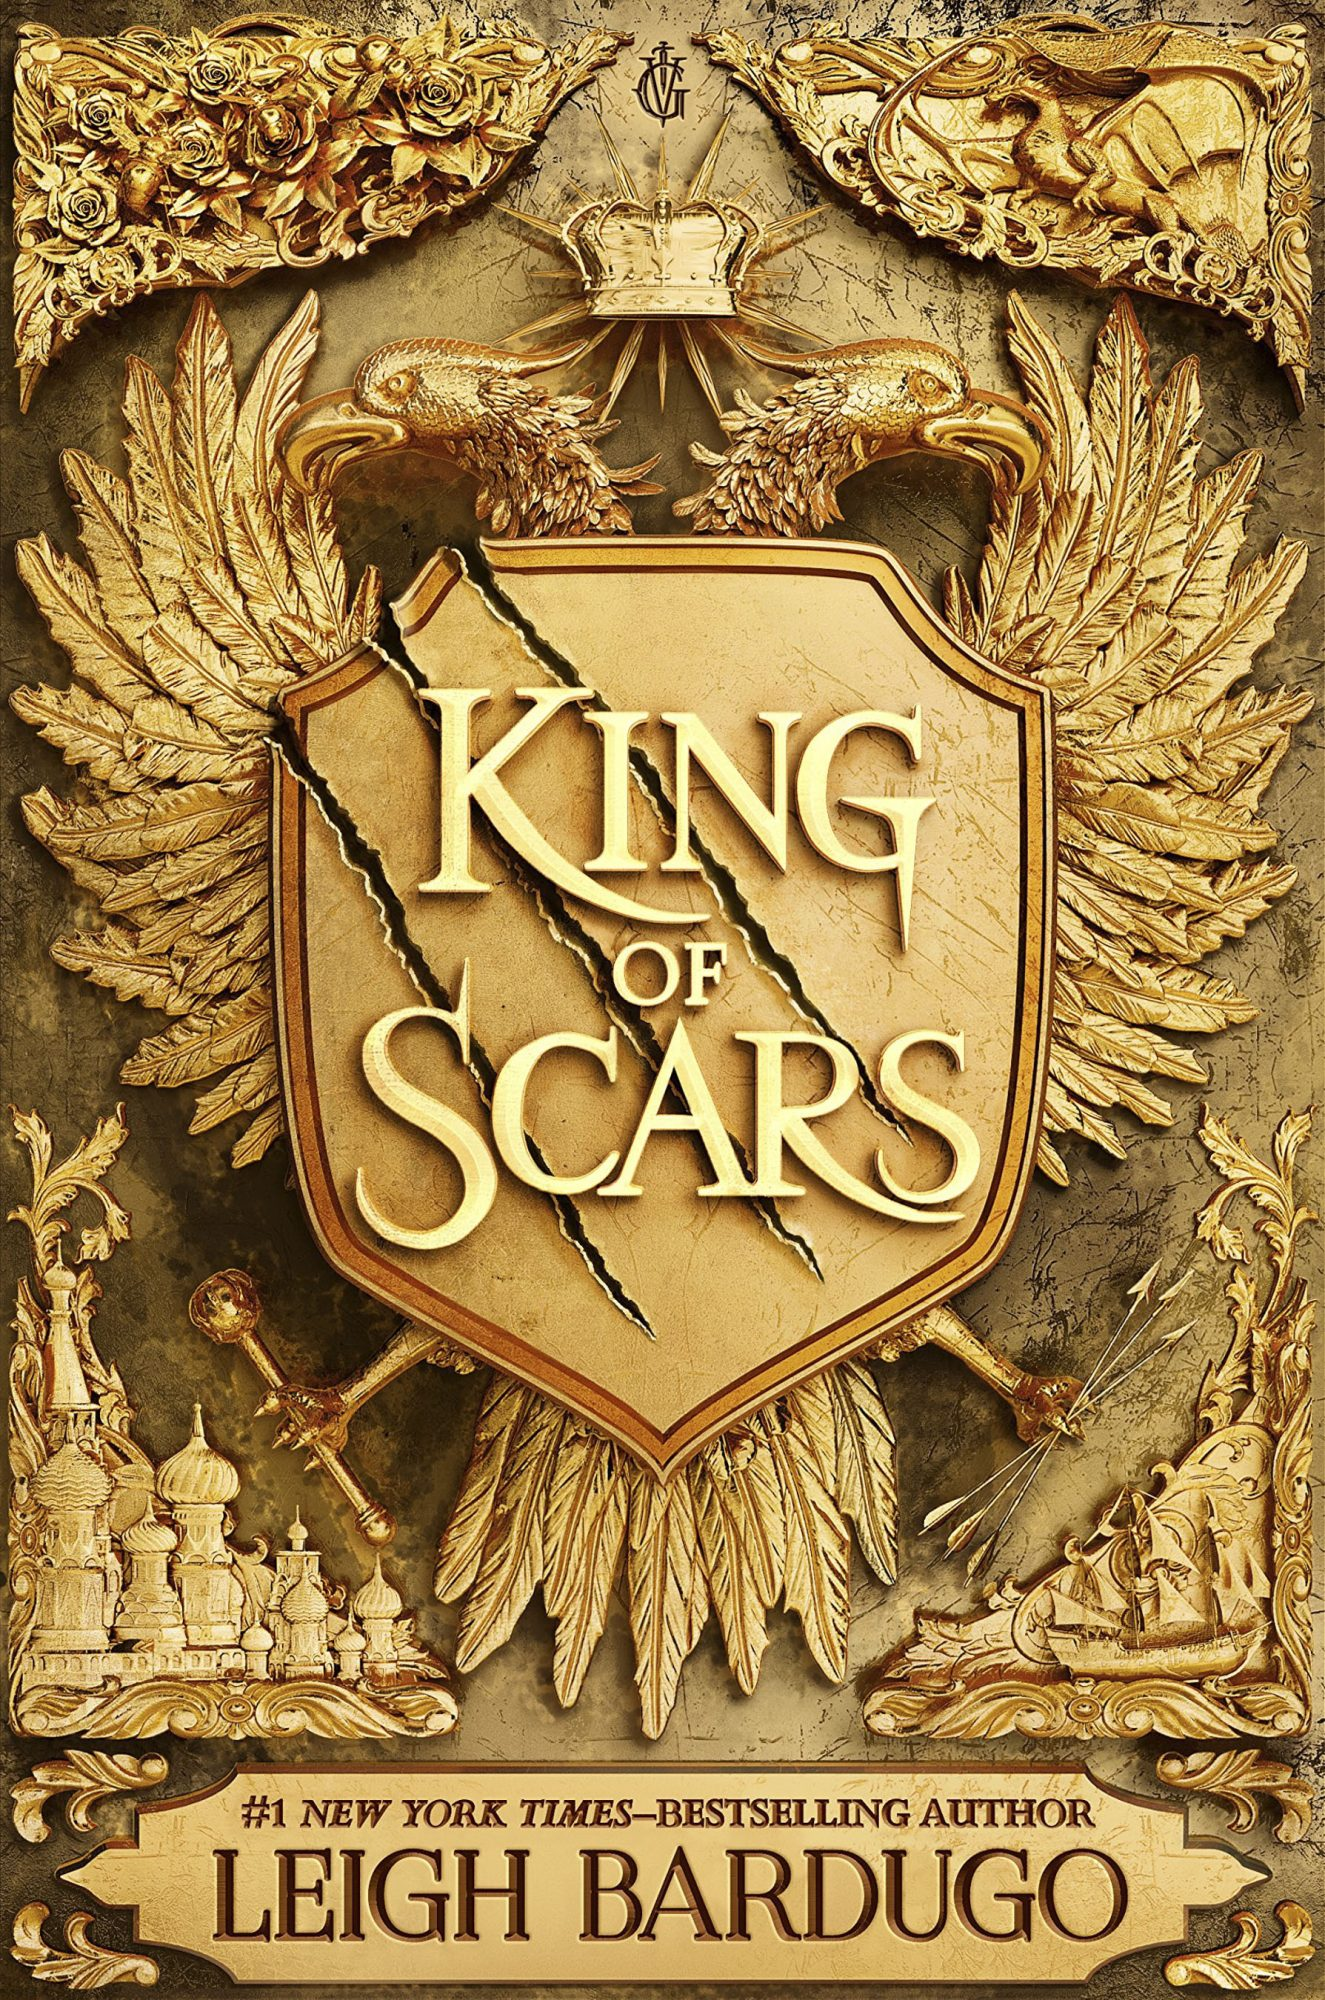 King of Scars, by Leigh Bardugo